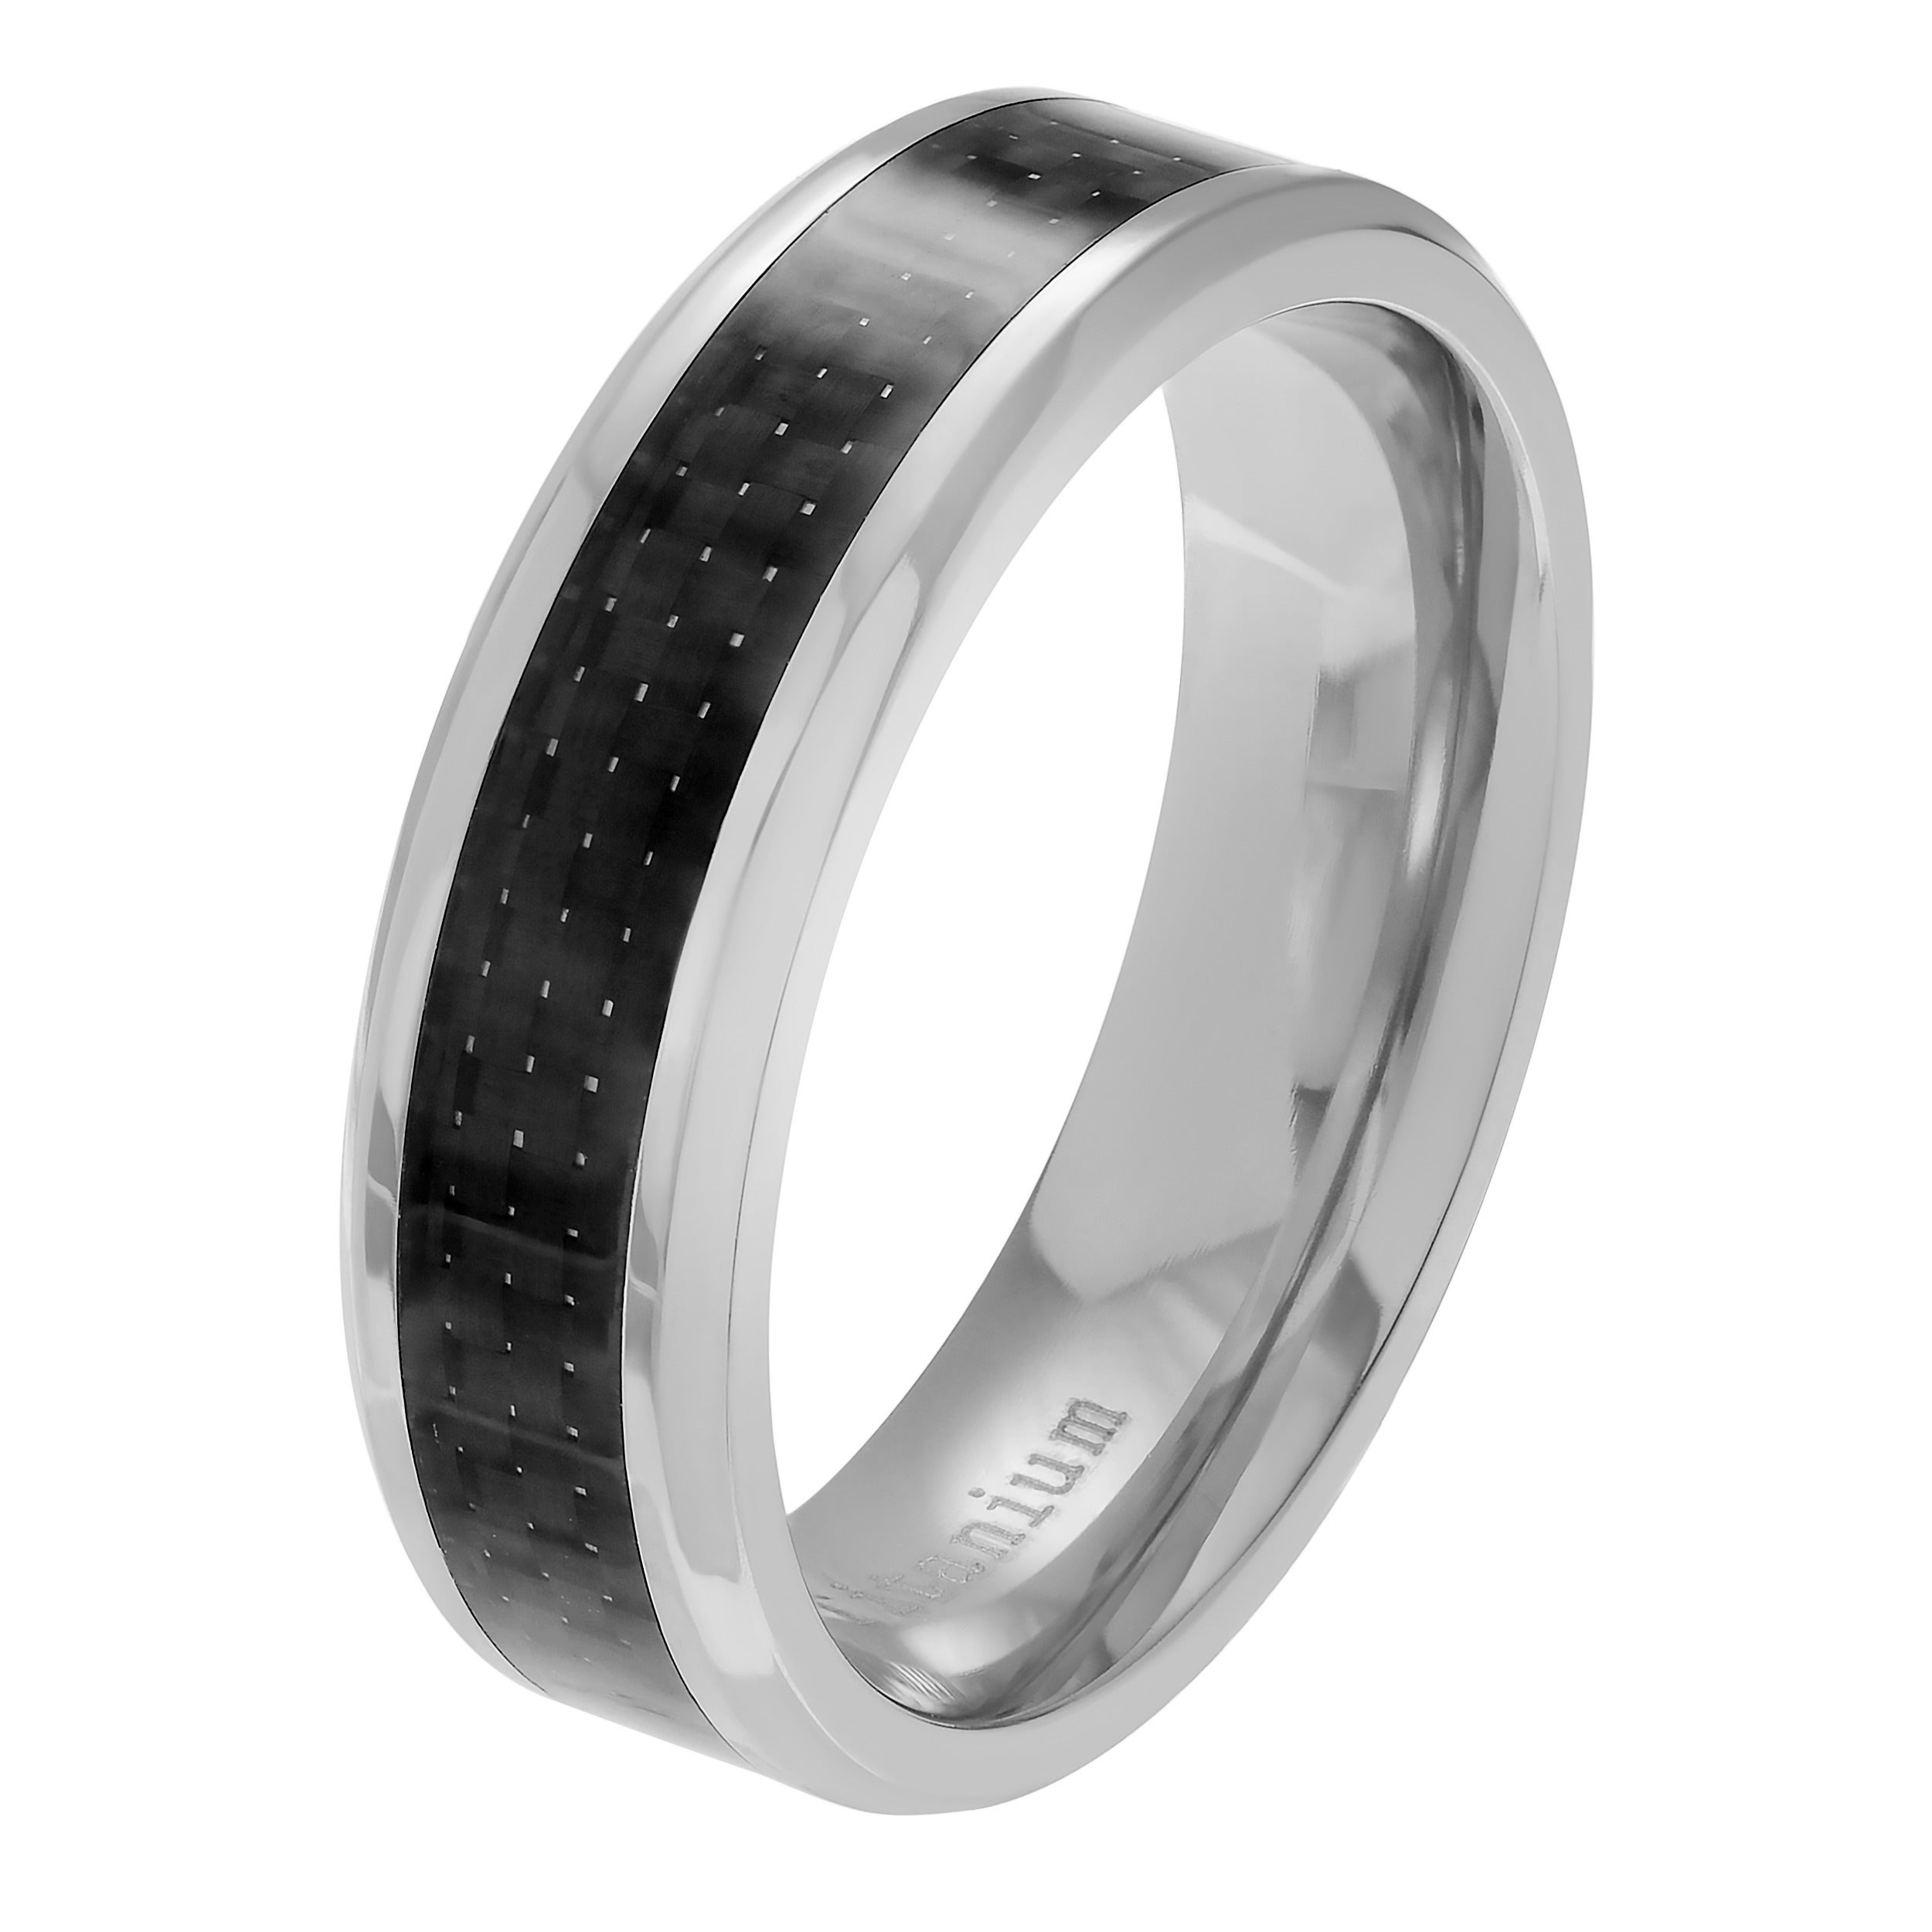 watches over fiber free product on titanium shipping band jewelry mens orders s rings overstock wedding carbon men